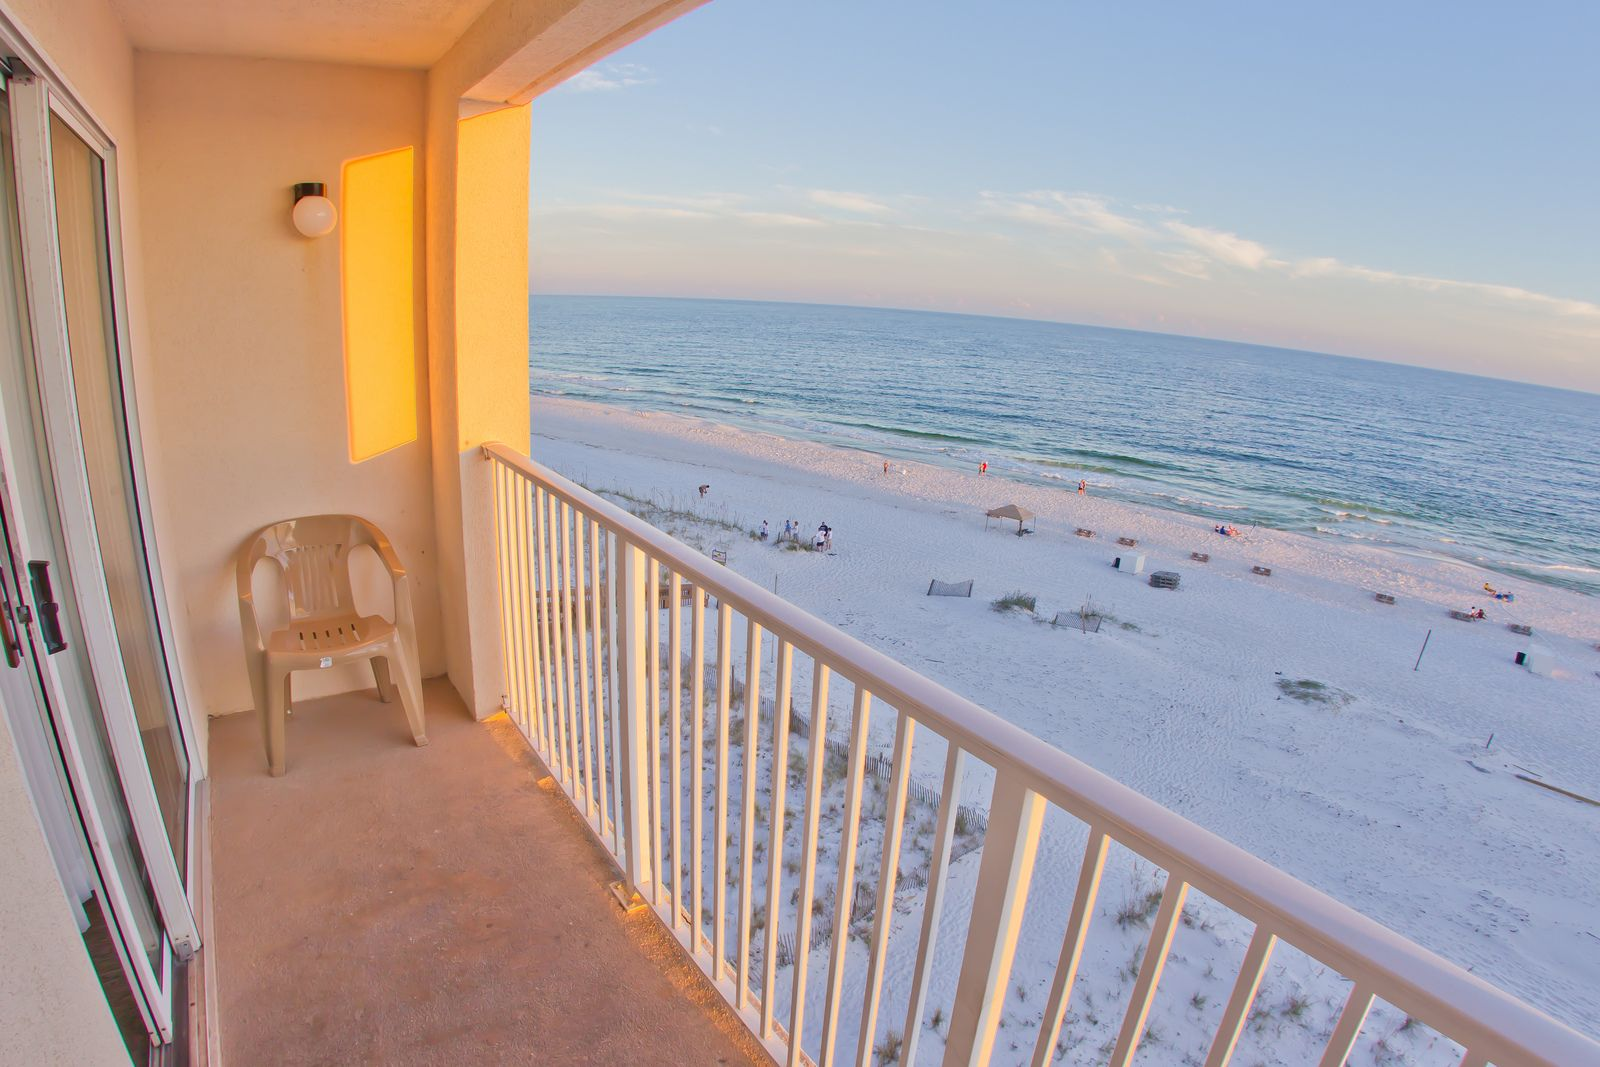 Hilton Garden Inn Beachfront Hotel In Orangebeach Al